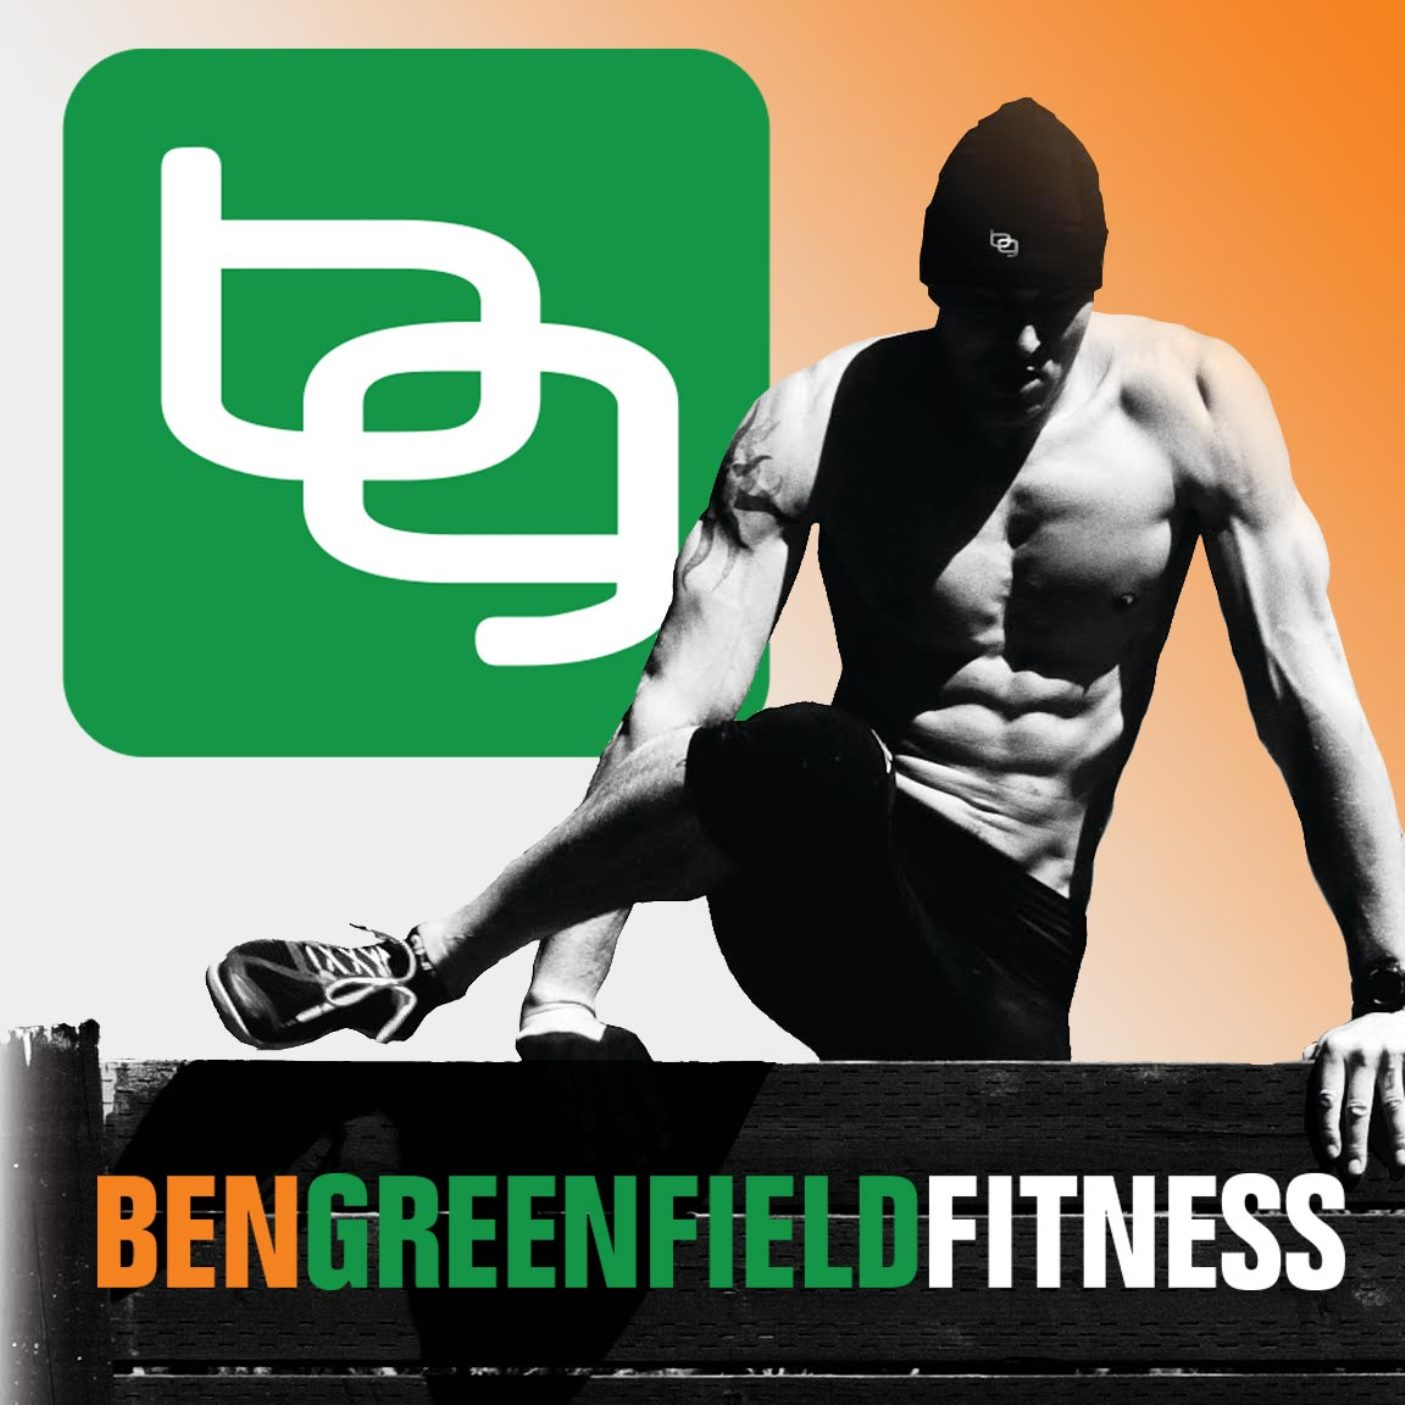 c004f6a4d60e PodcastOne  Ben Greenfield Fitness  Diet